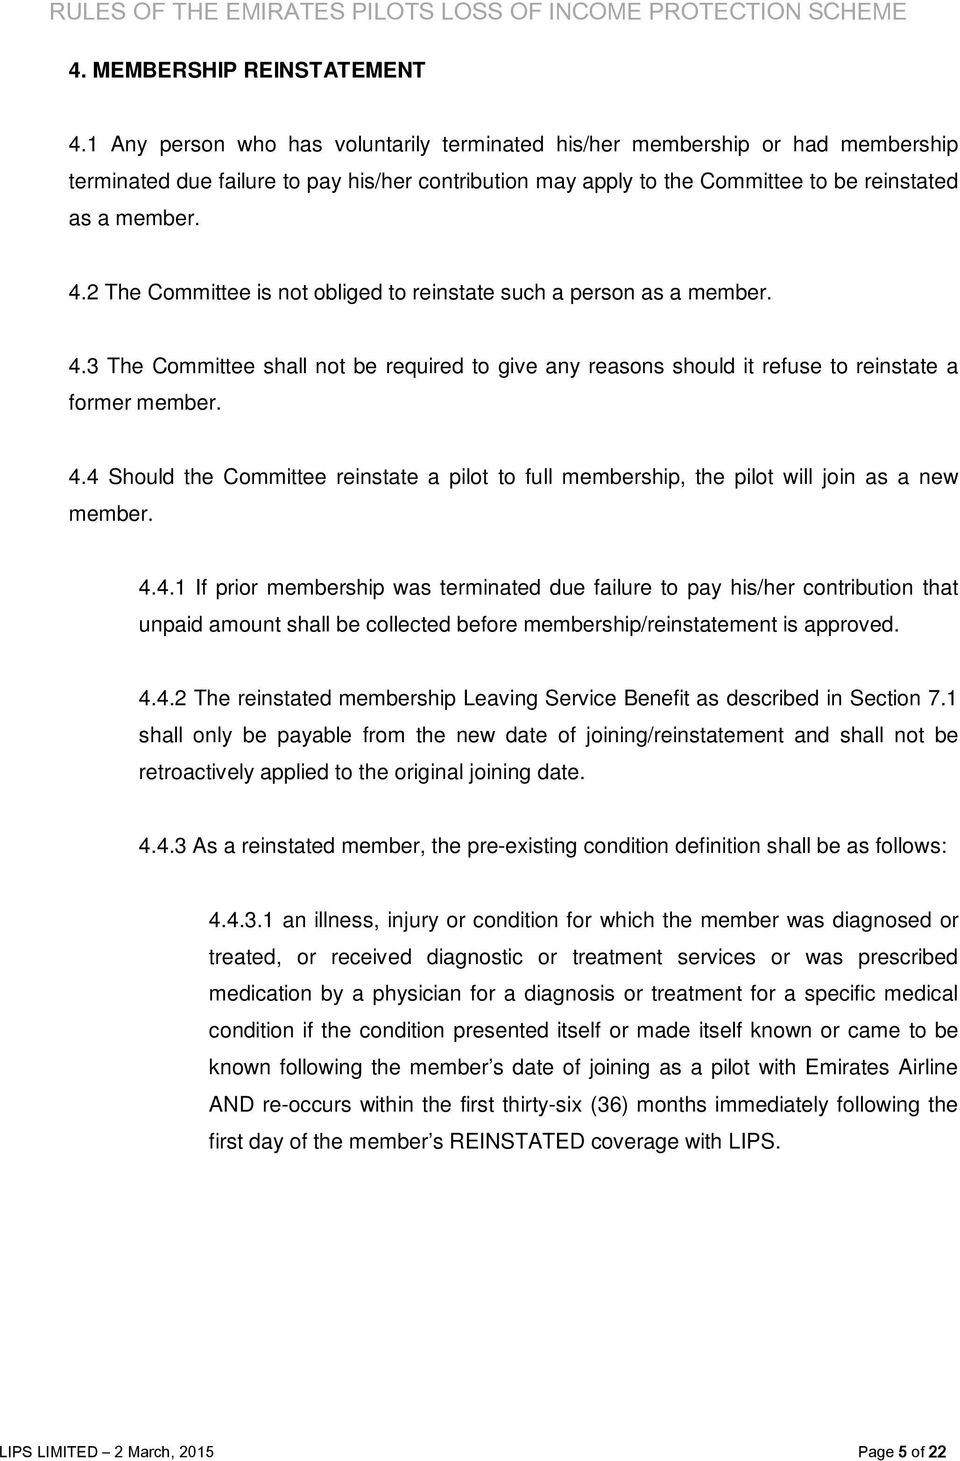 2 The Committee is not obliged to reinstate such a person as a member. 4.3 The Committee shall not be required to give any reasons should it refuse to reinstate a former member. 4.4 Should the Committee reinstate a pilot to full membership, the pilot will join as a new member.